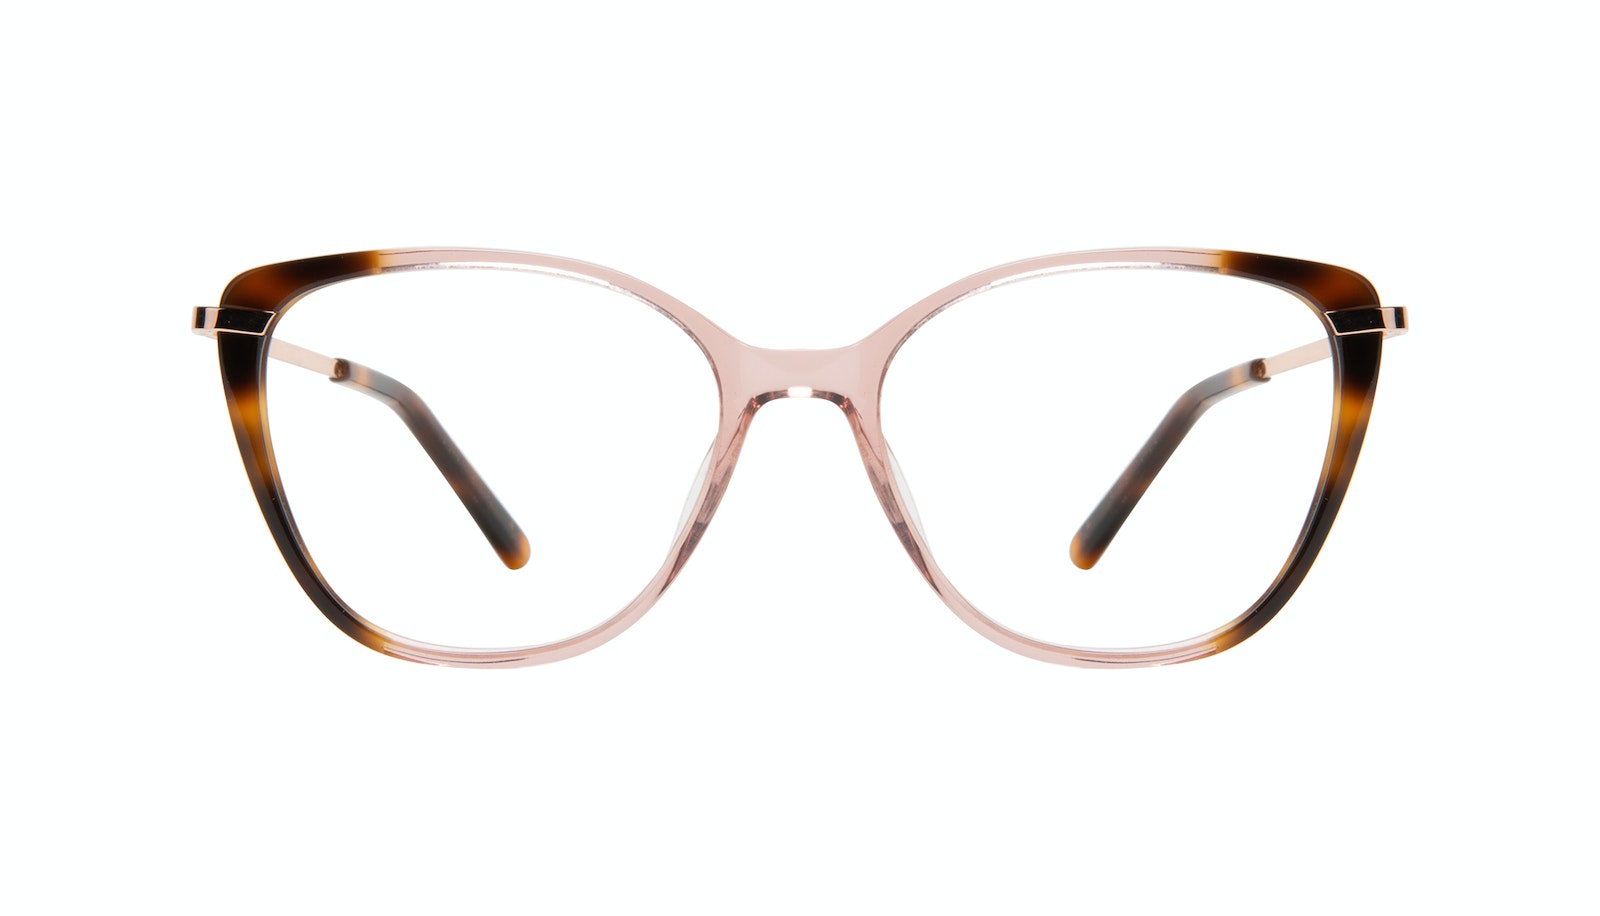 Affordable Fashion Glasses Rectangle Square Eyeglasses Women Illusion Rose Tort